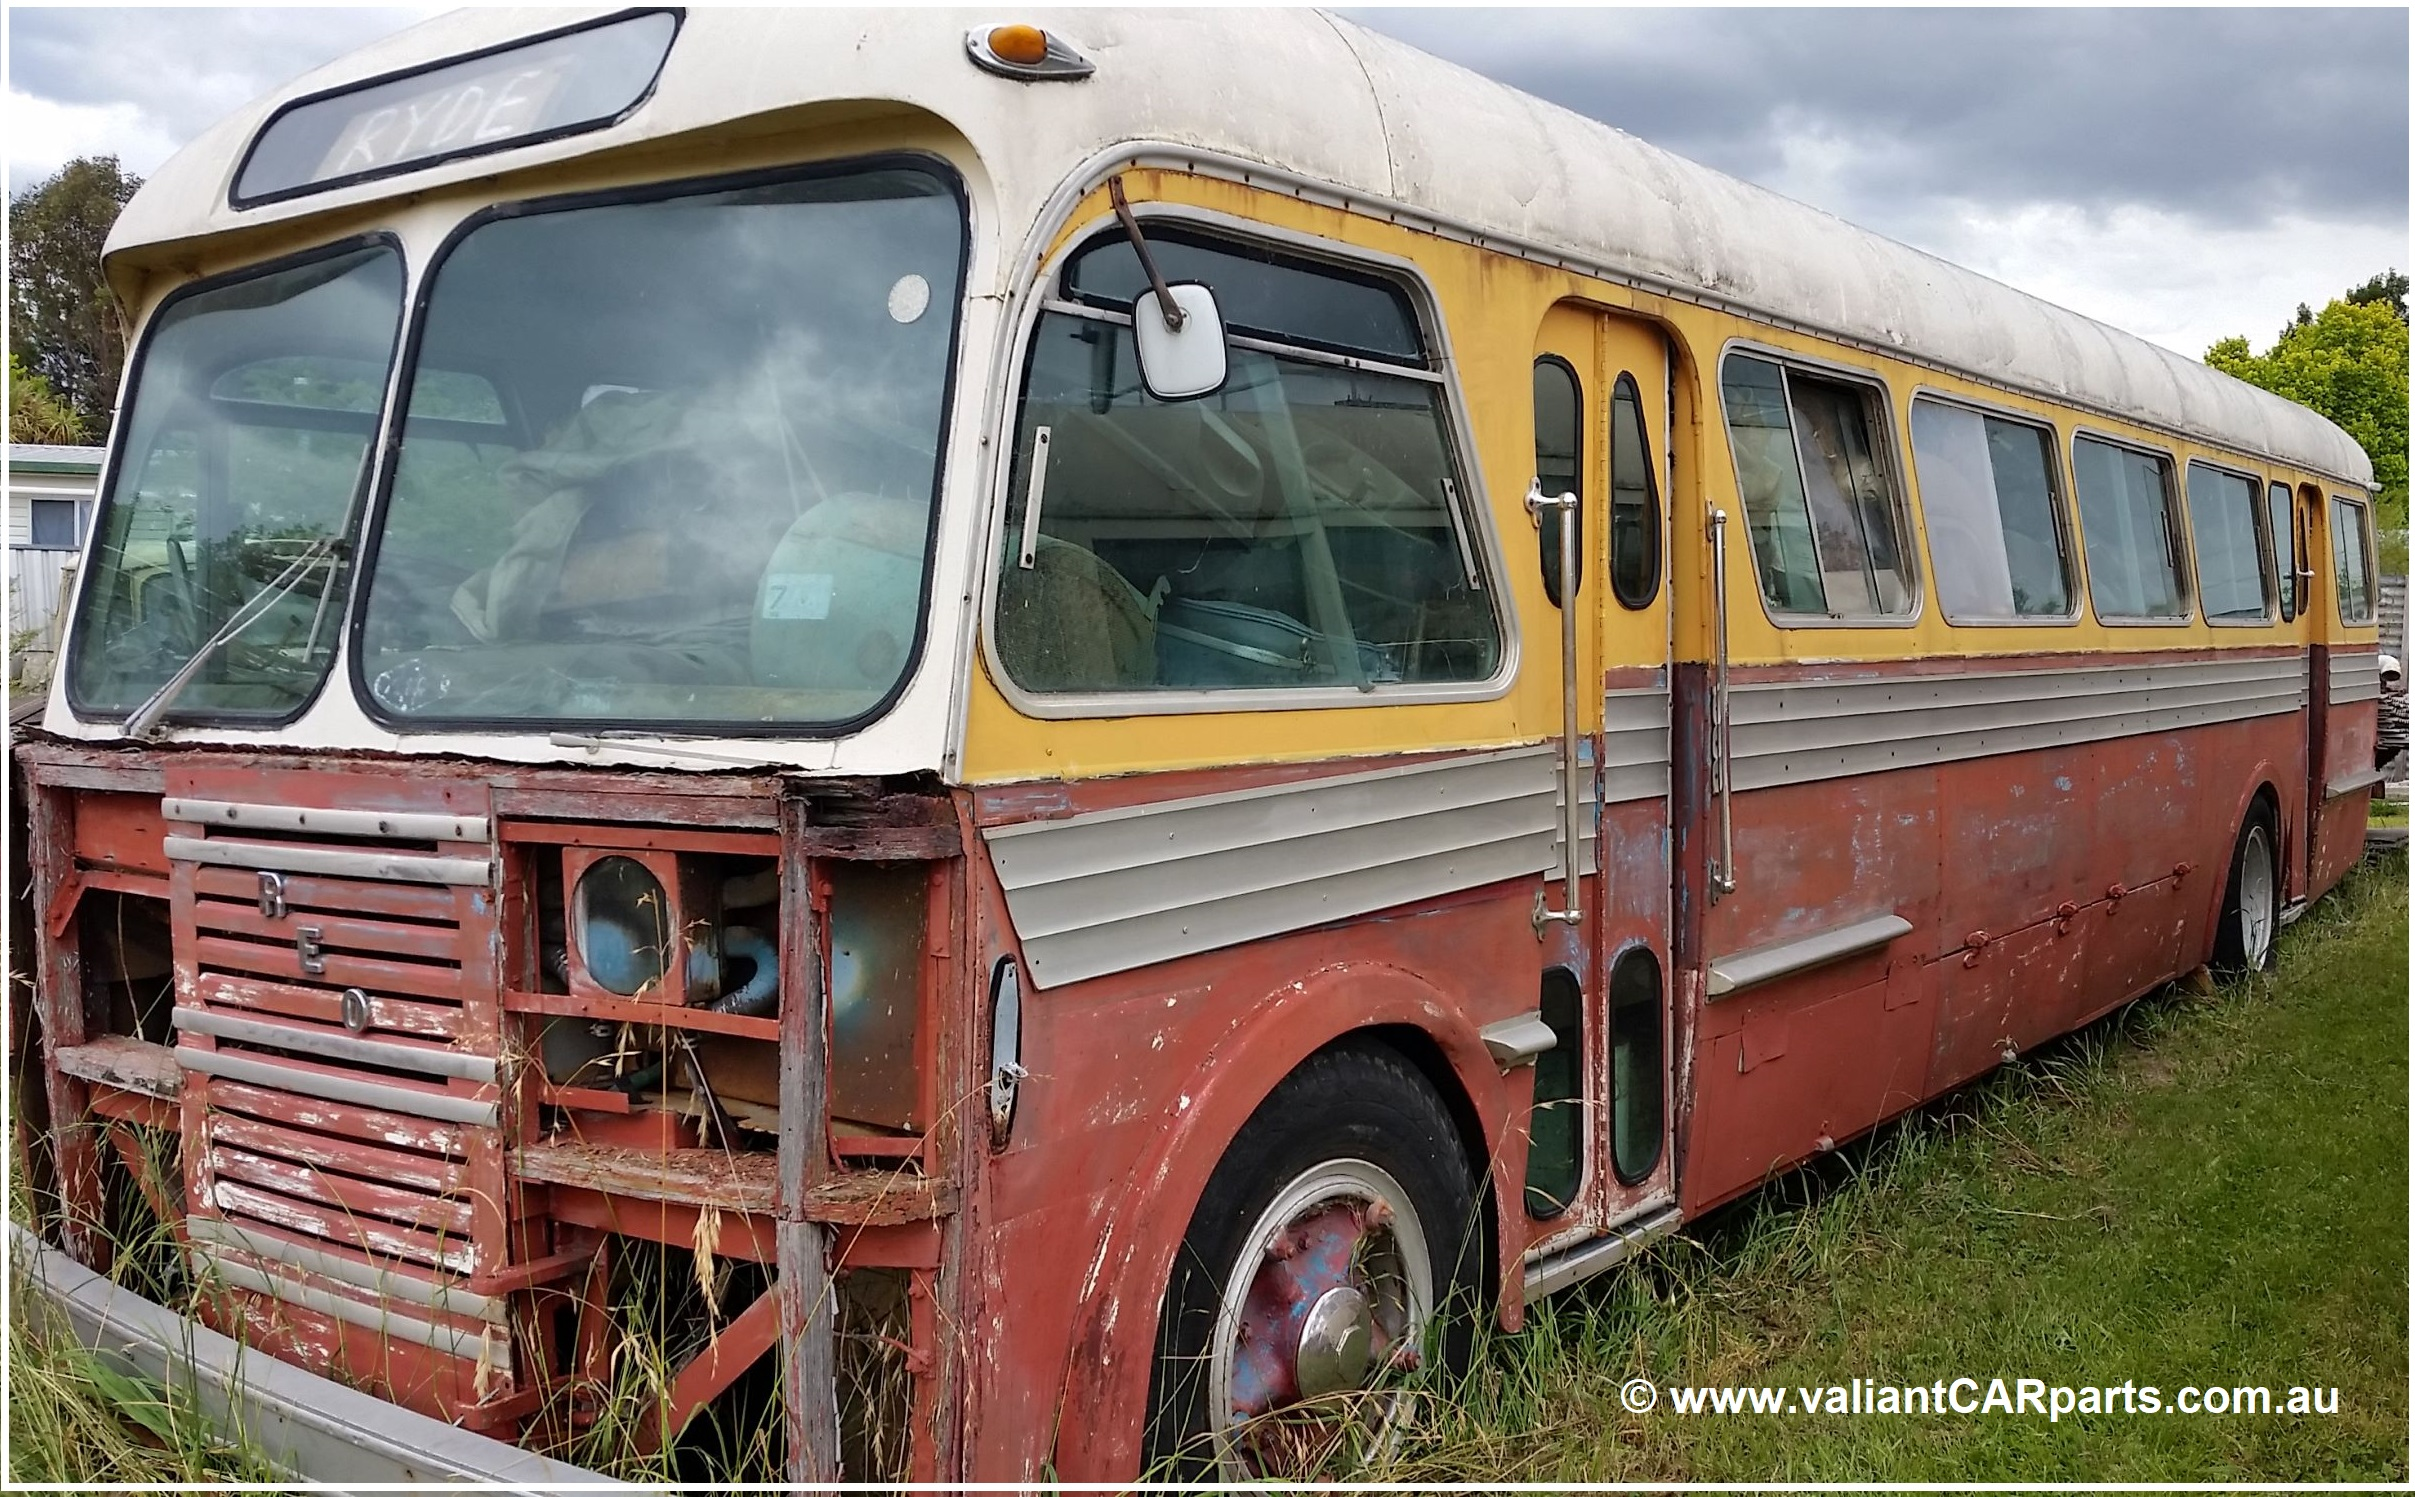 1960s_vintage_REO_gold_comet_Ryde_Coach_Bus_for_sale_nsw_australia-LHF